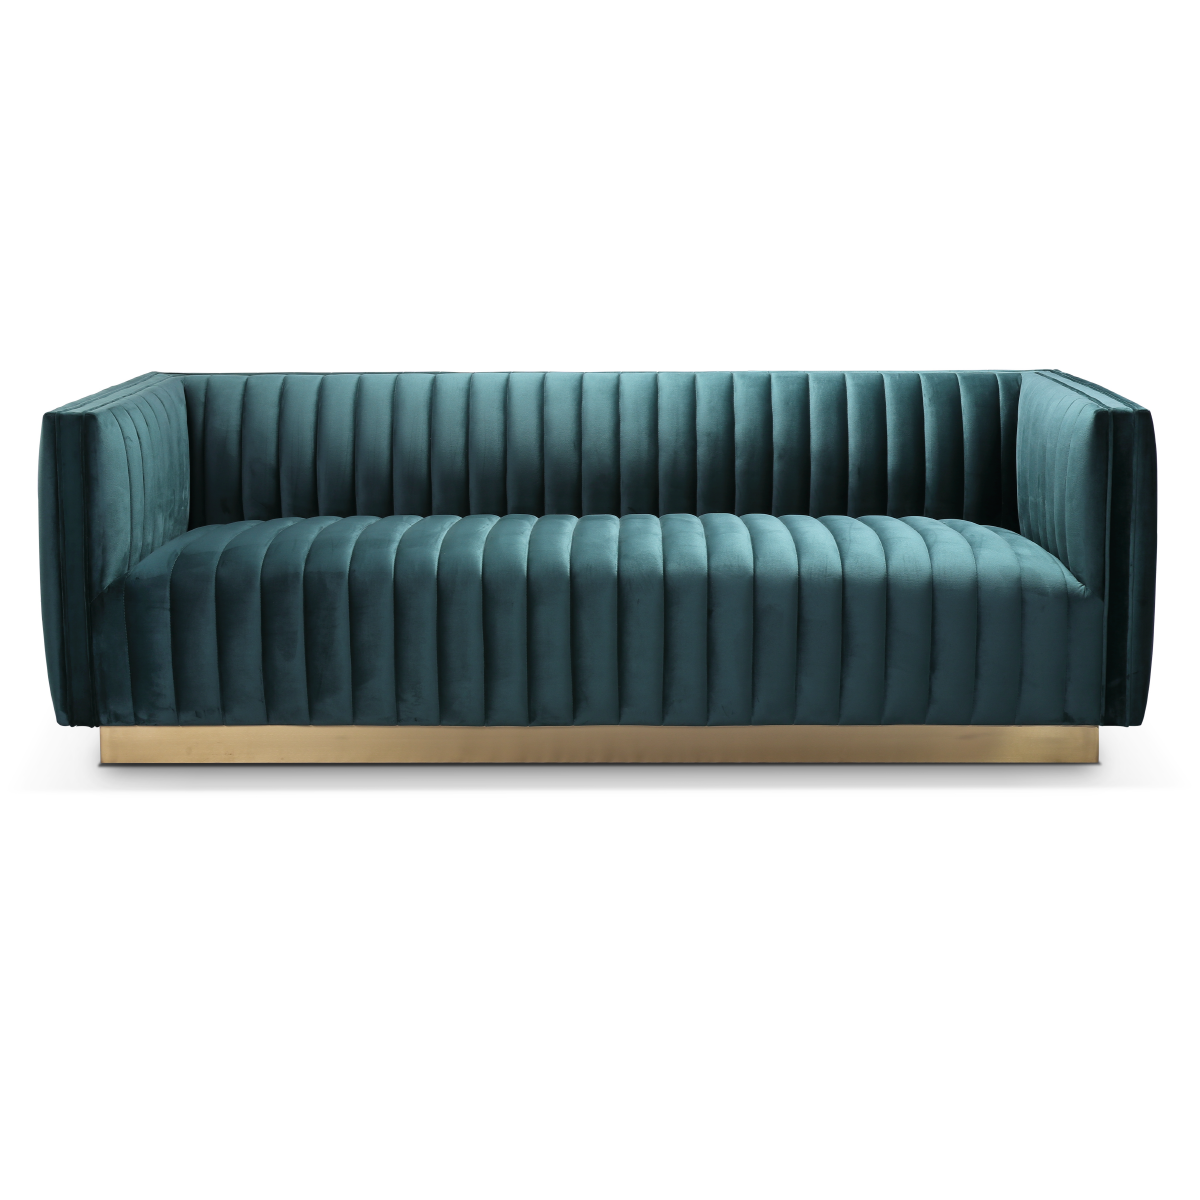 Emerald 3 Seater Sofa - mhomefurniture